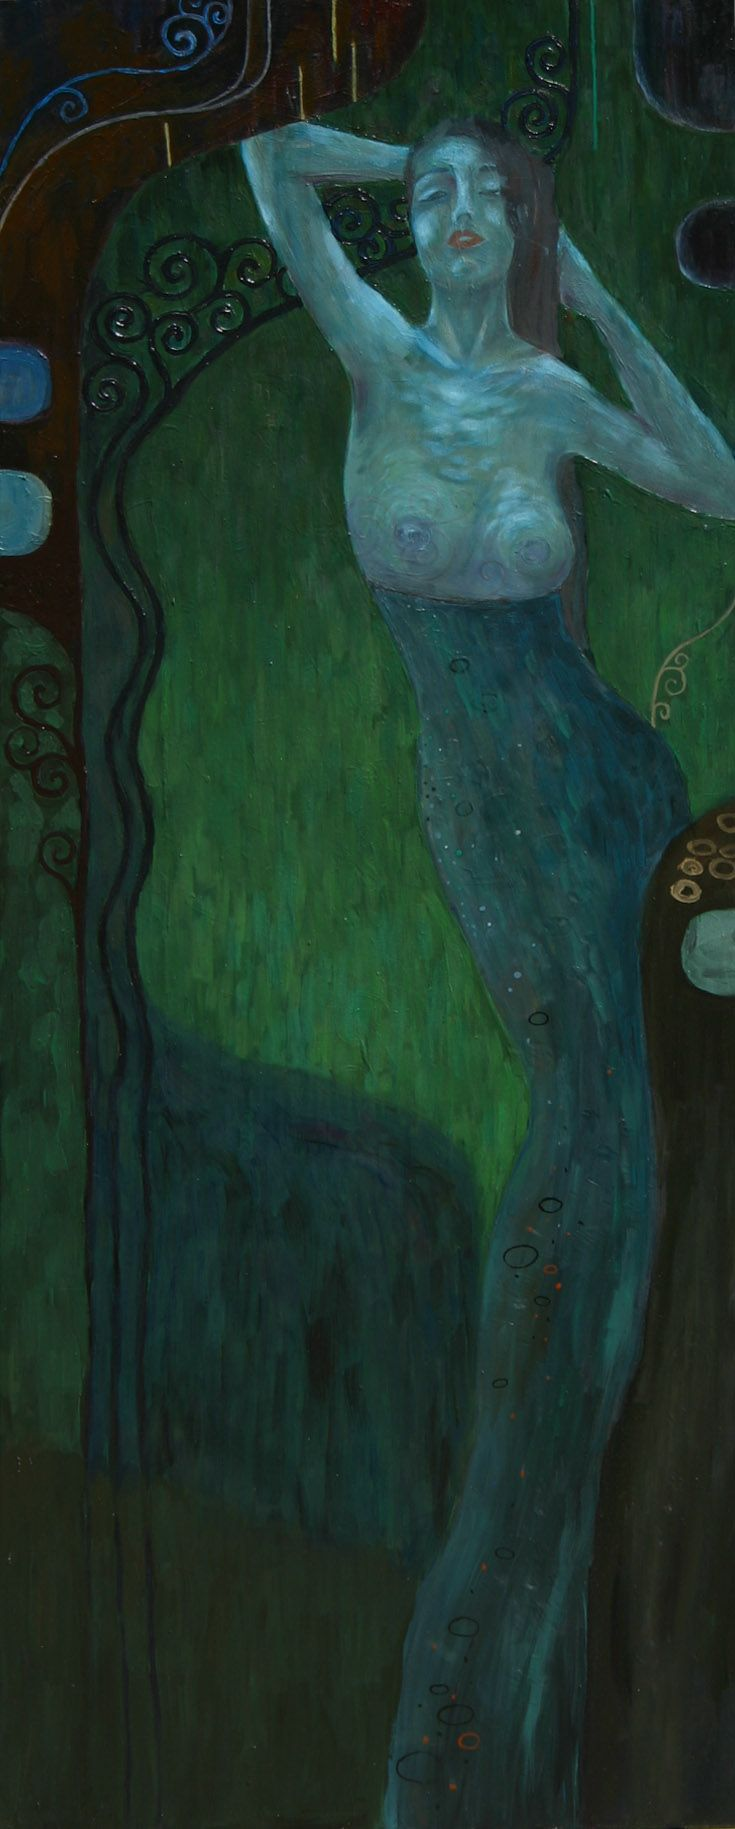 #secession #Klimt #decor #decorative #nude #nudity #erotic #subtle #linear #fineness #woman#art #painting#green